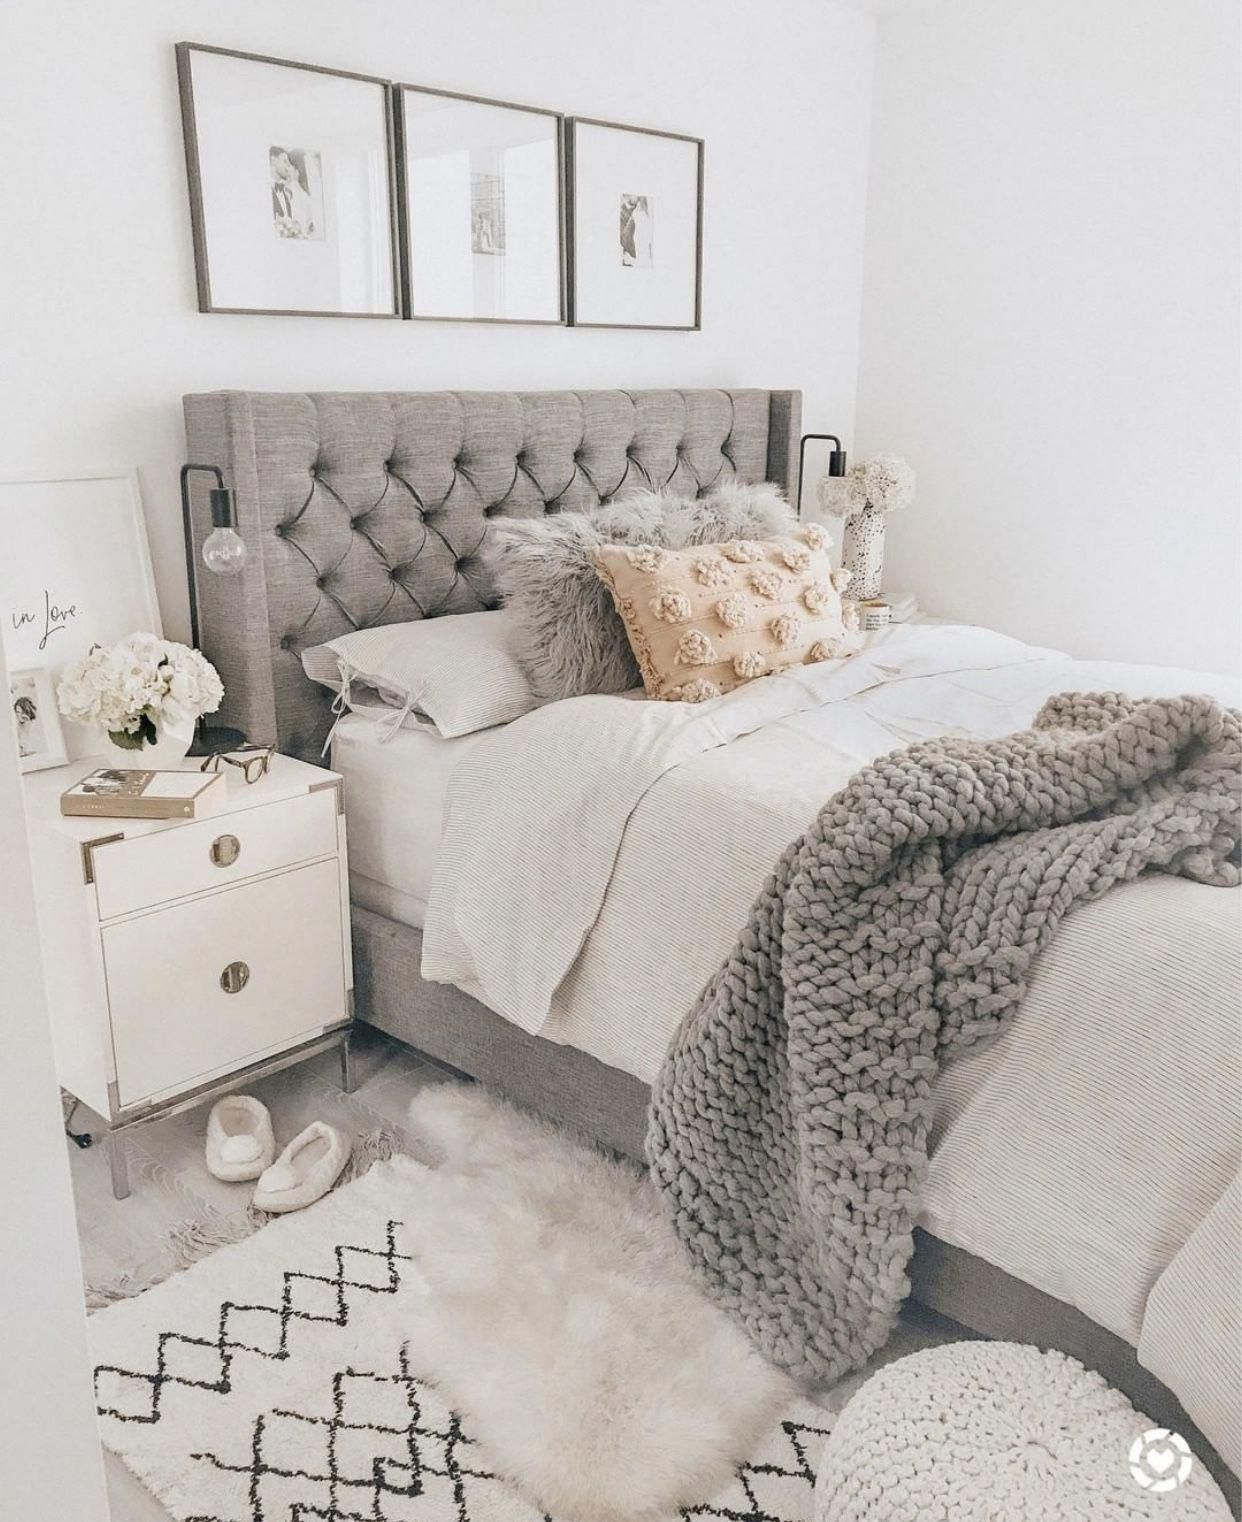 Pin by Sarah Hatch on Dream House   Cozy home decorating ... on Cozy Teenage Room Decor  id=90356